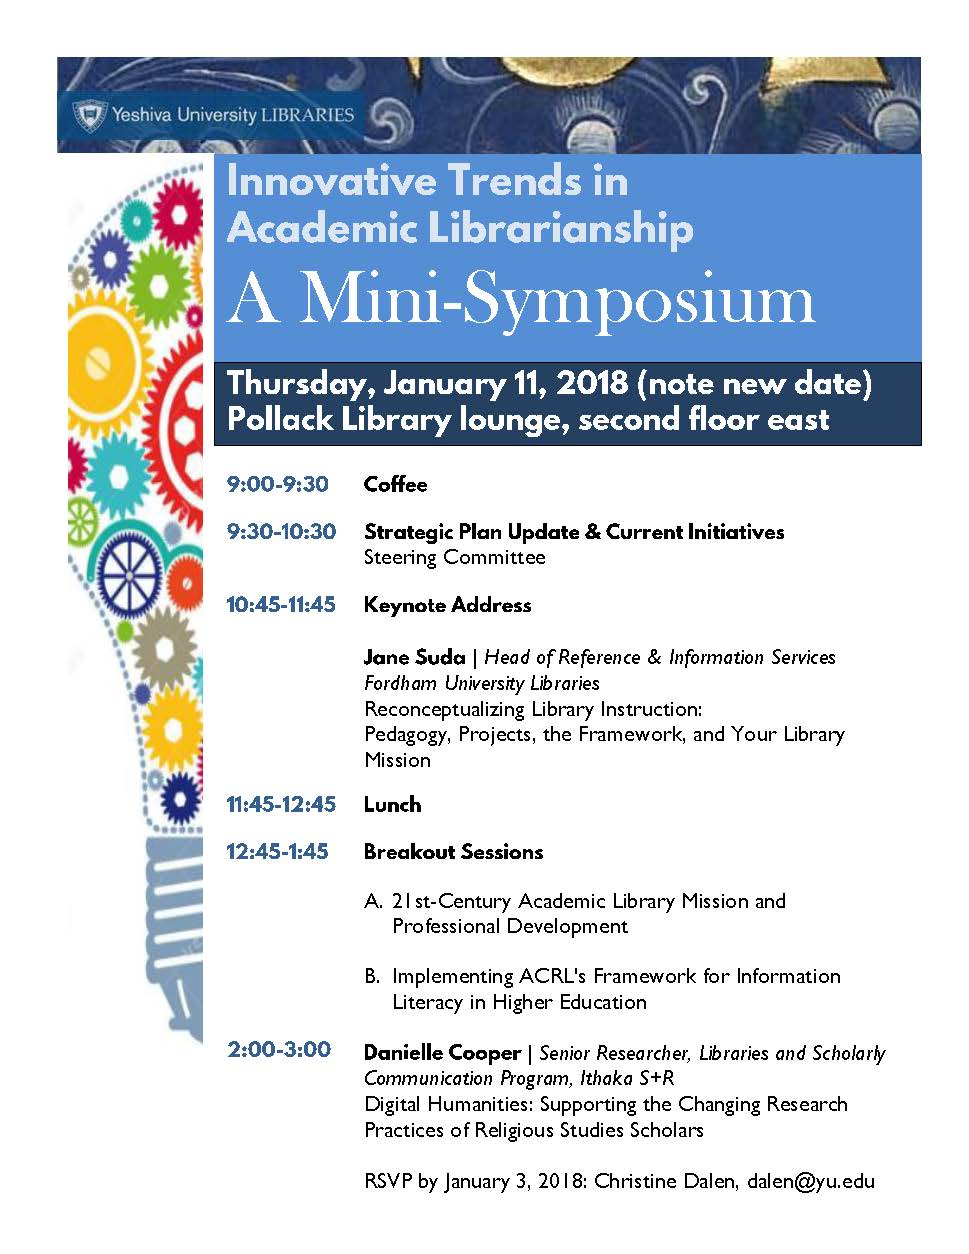 Innovative Trends in Academic Libraries A MiniSymposium Library